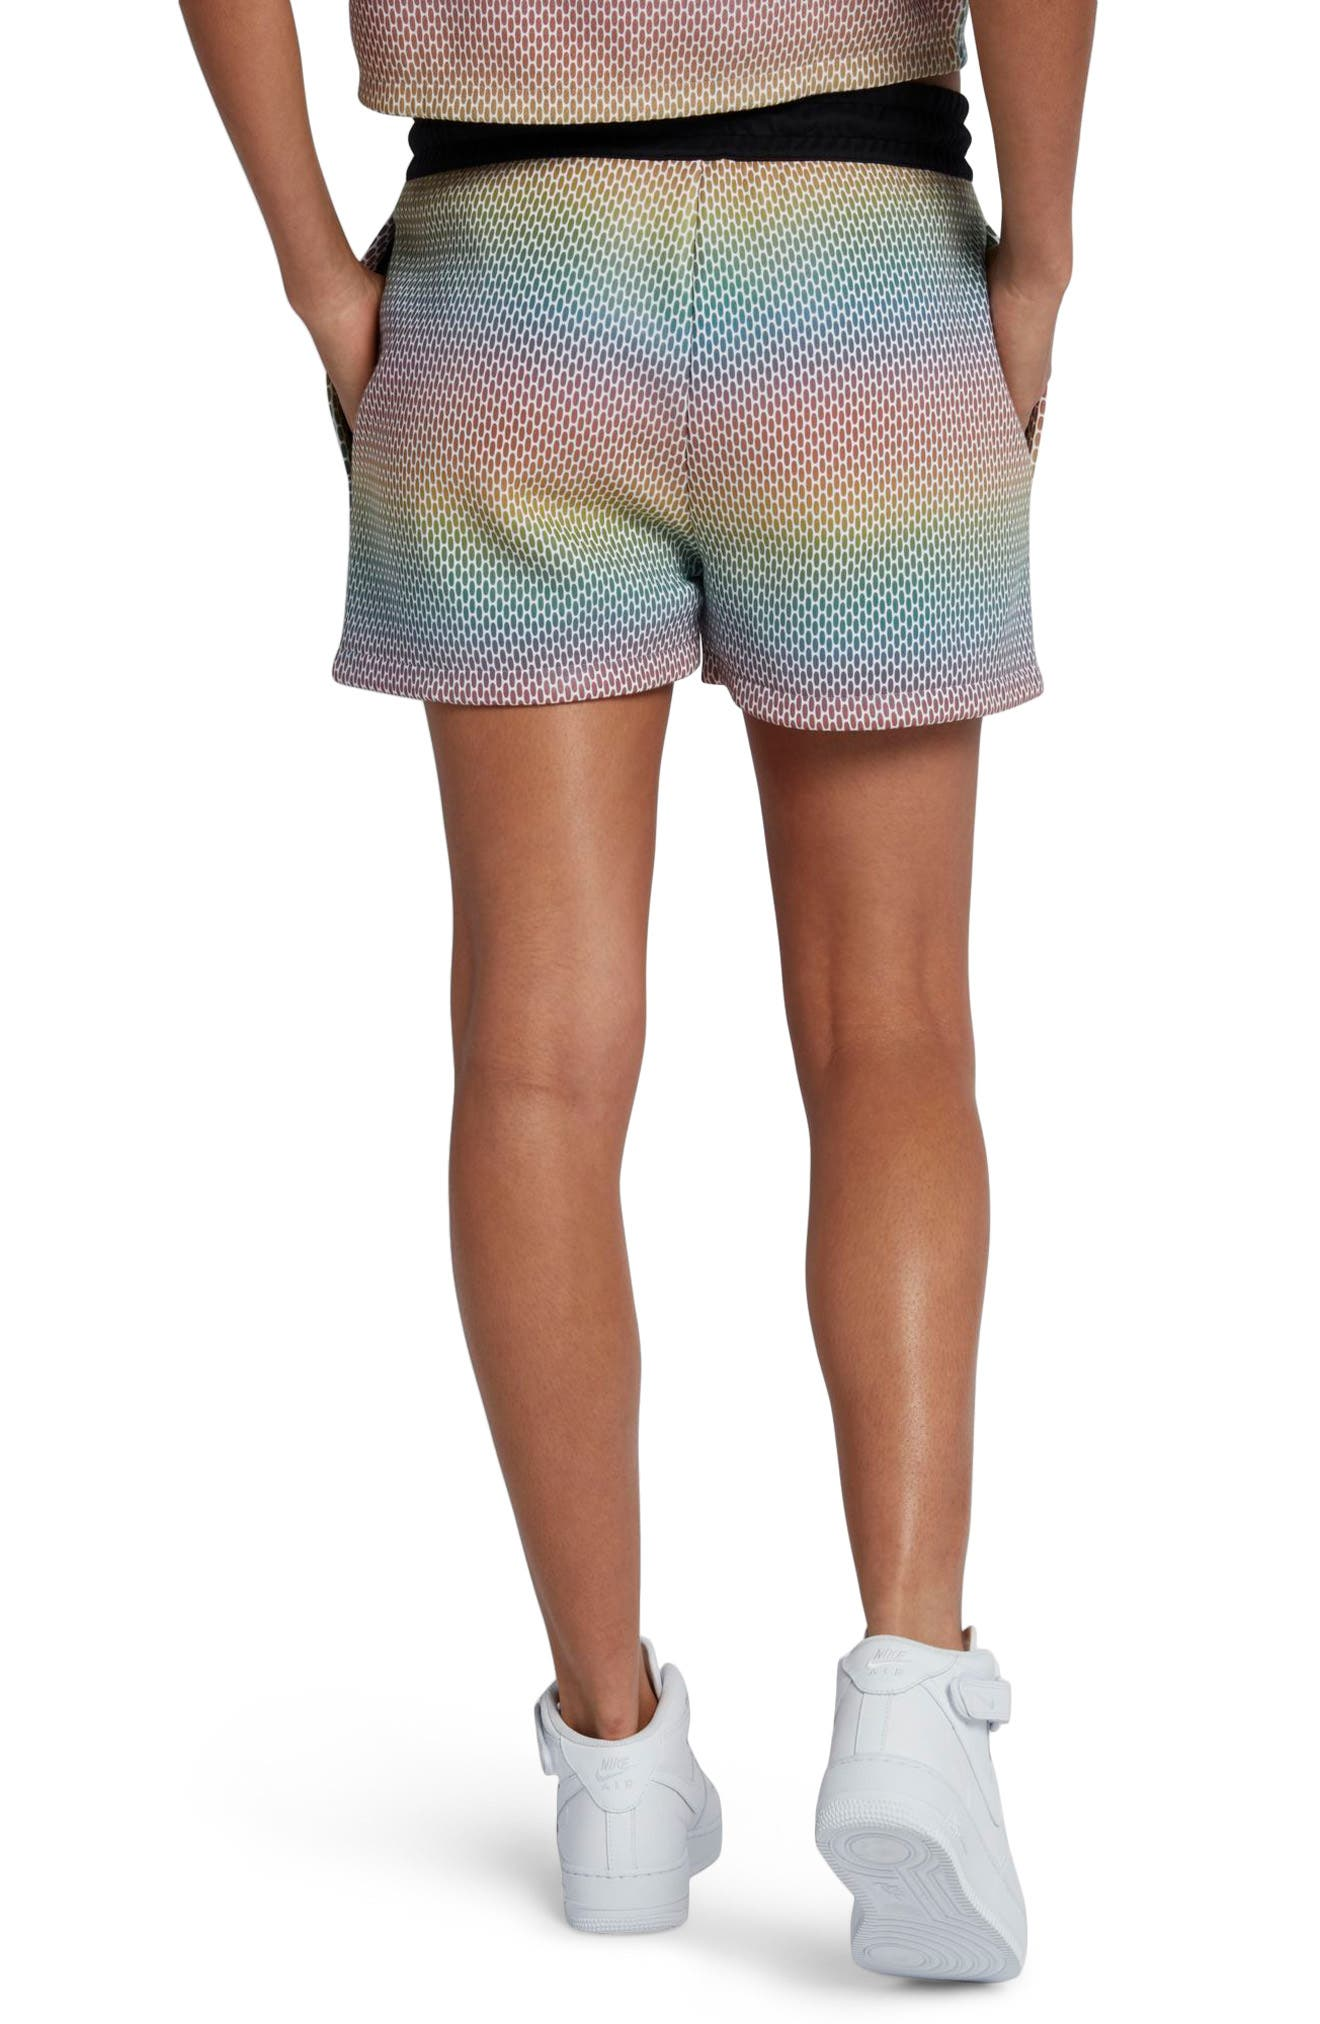 NikeLab Oil Slick Shorts,                             Alternate thumbnail 2, color,                             100